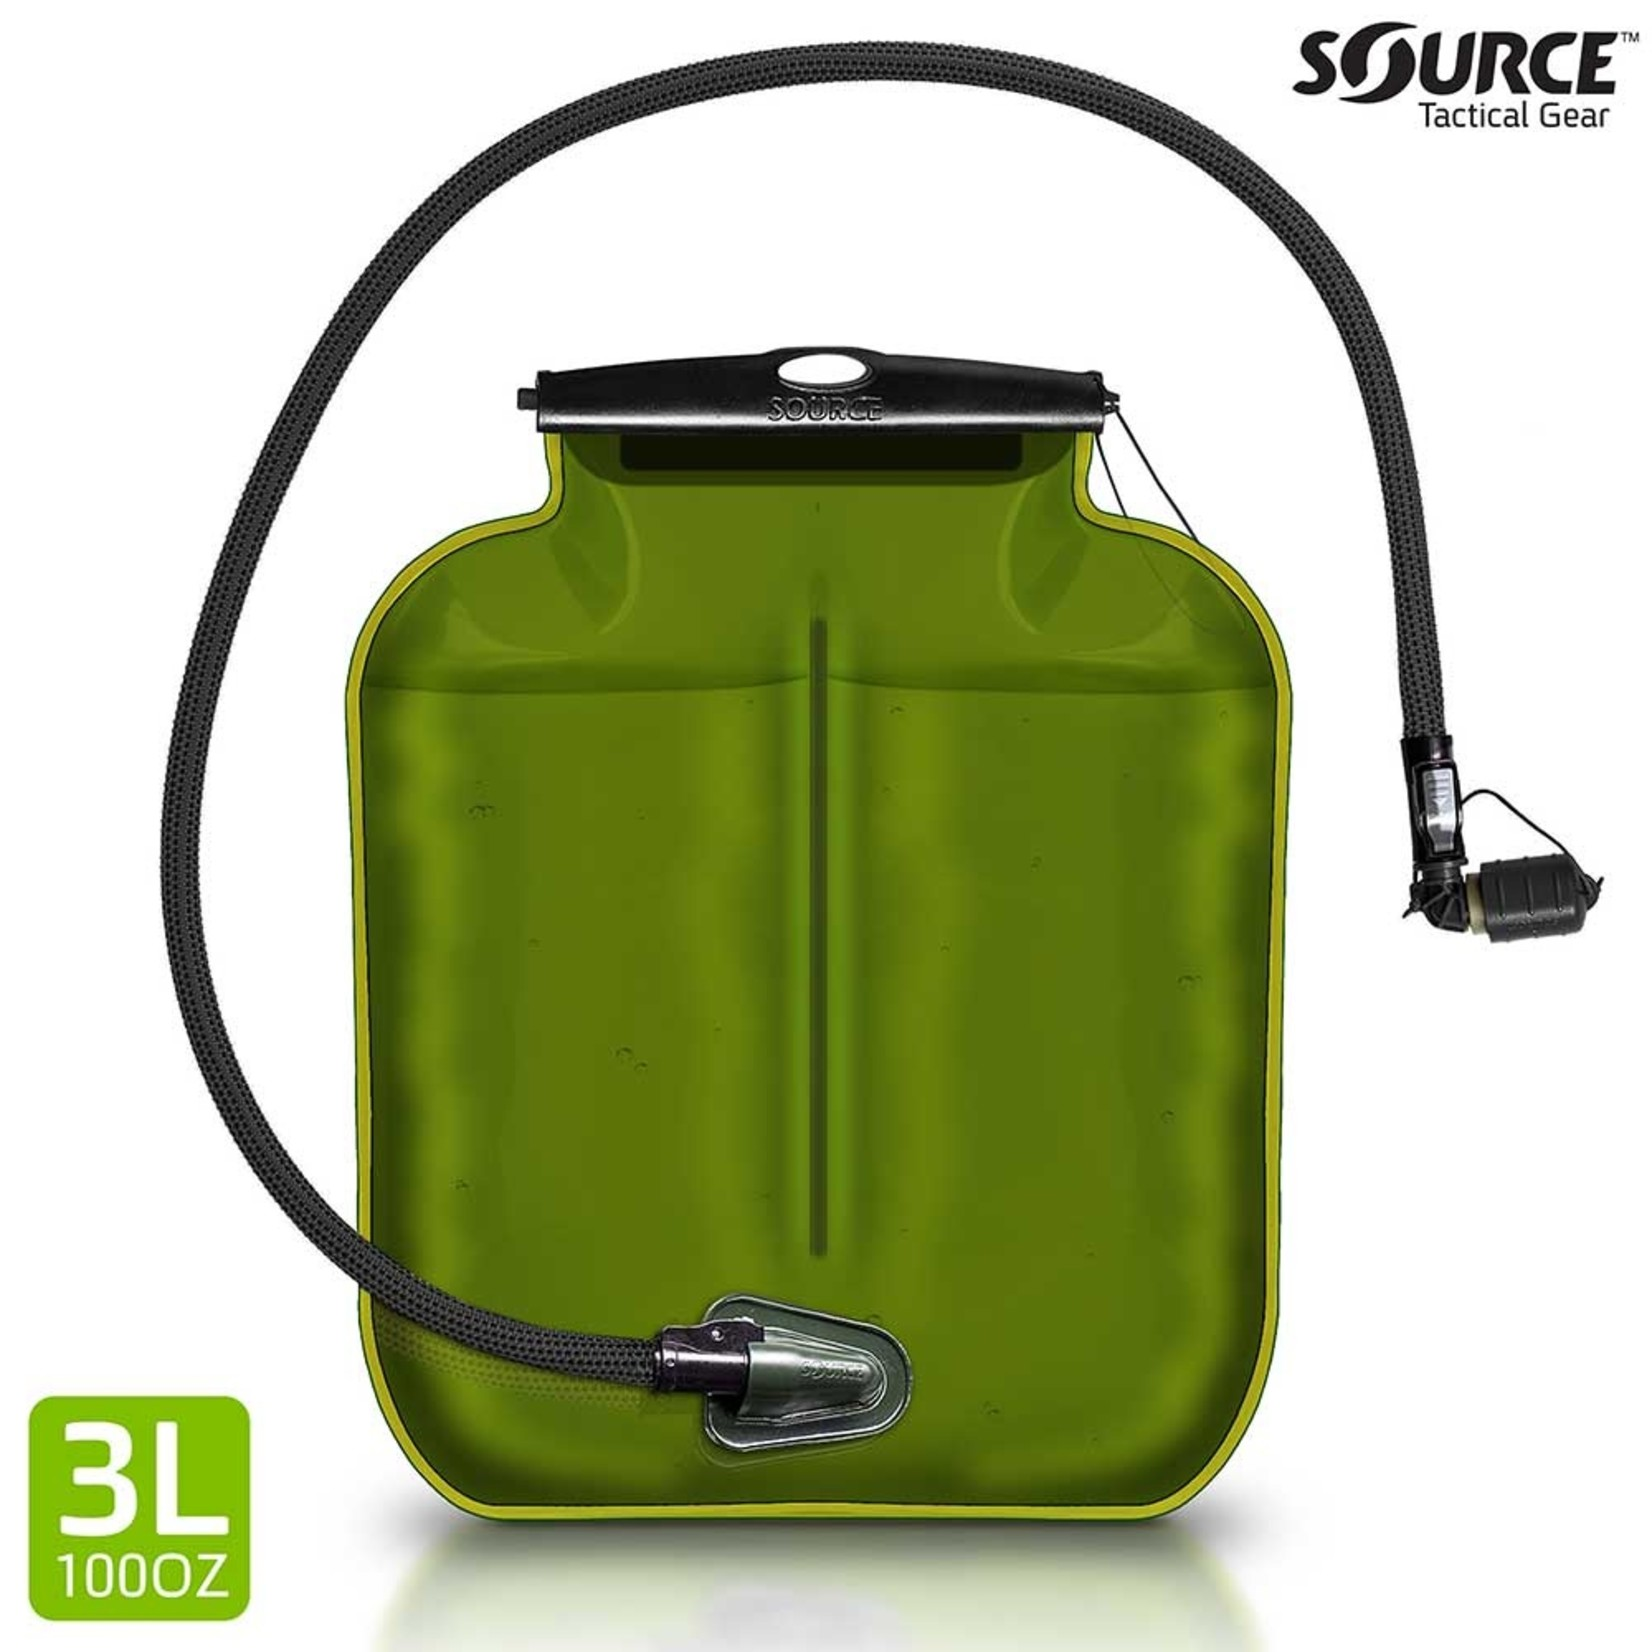 SOURCE TACTICAL GEAR ILPS WITH UTA   LOW PROFILE HYDRATION BLADDER   3L (100 OZ.)